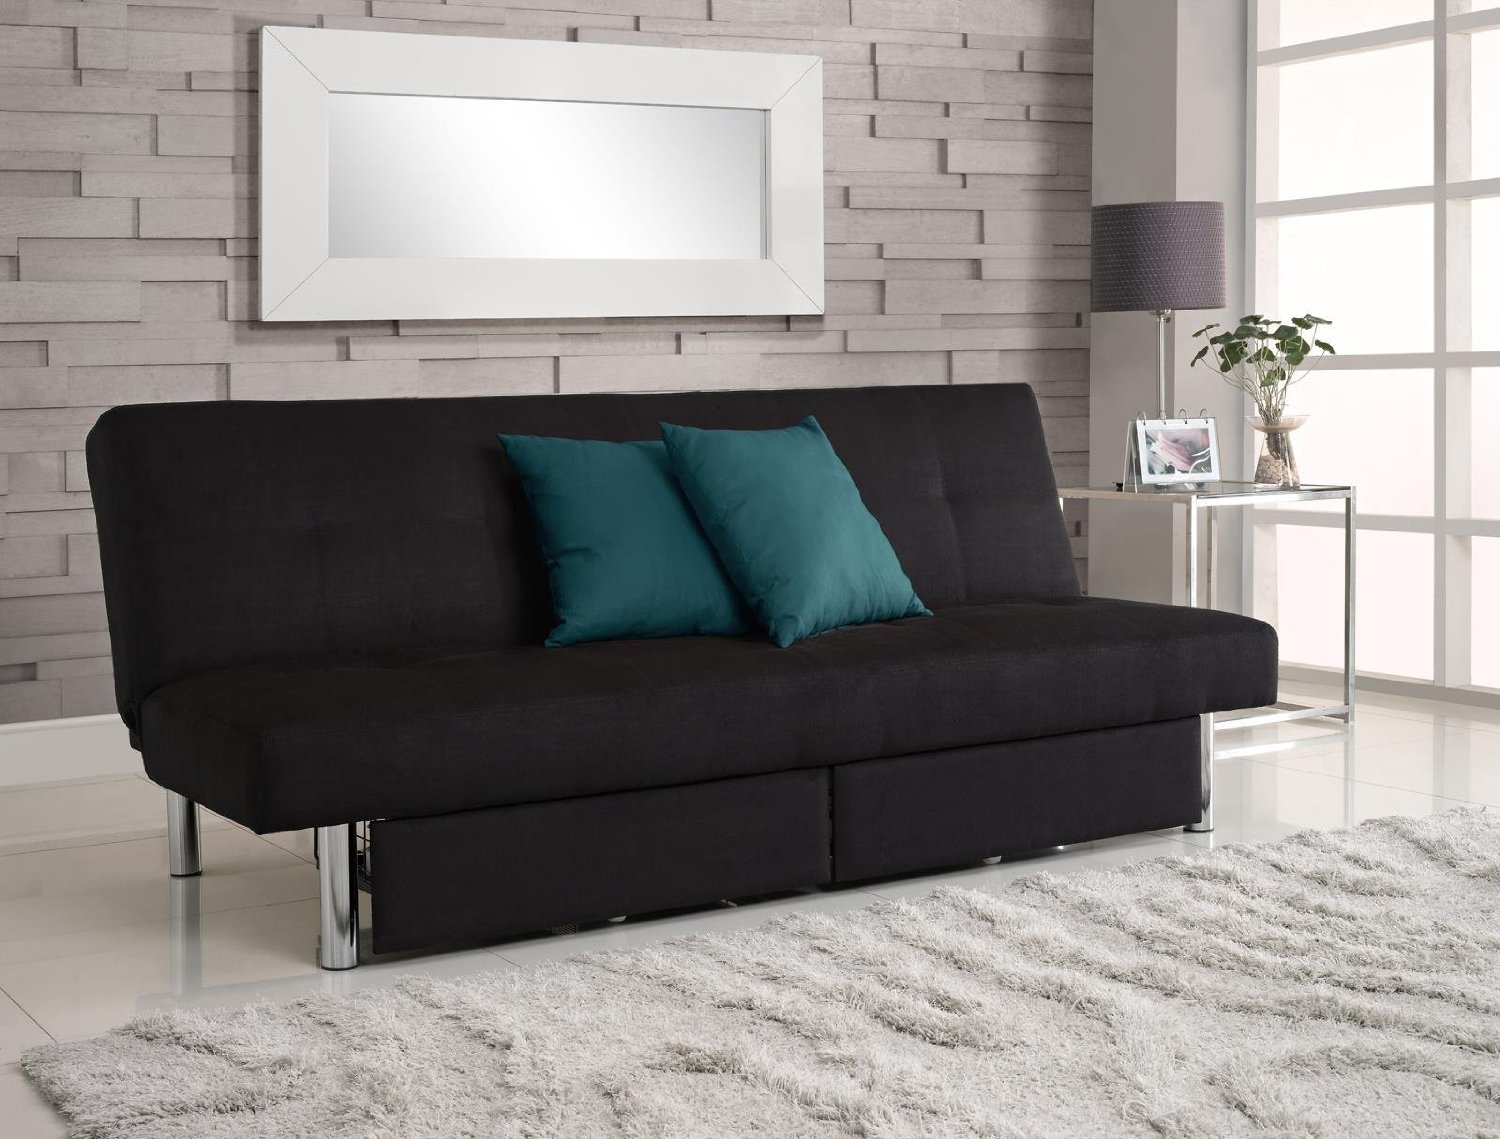 elegant futon color interior room ideas furniture and living design loveseat futons for are of fabulous with comfortable another